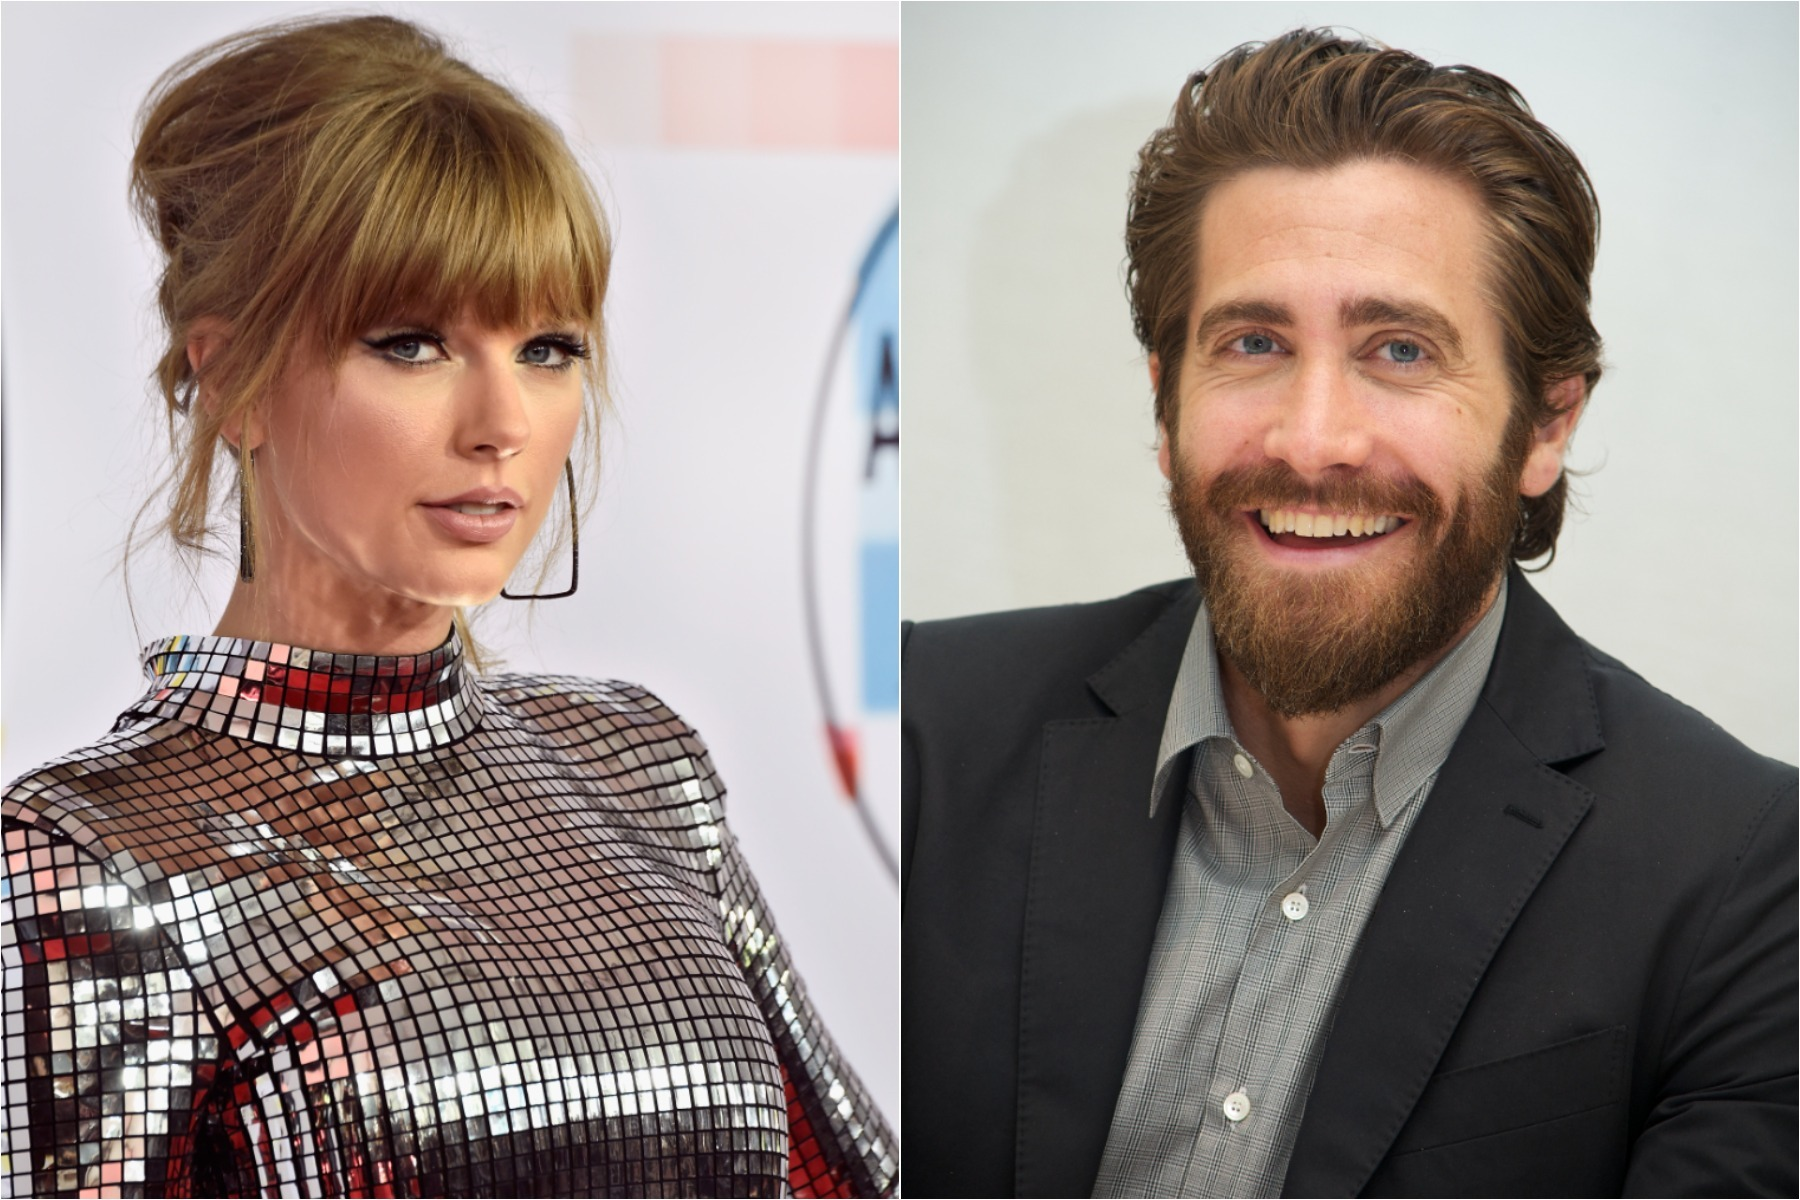 Taylor Swift Jake Gyllenhaal throwback photo